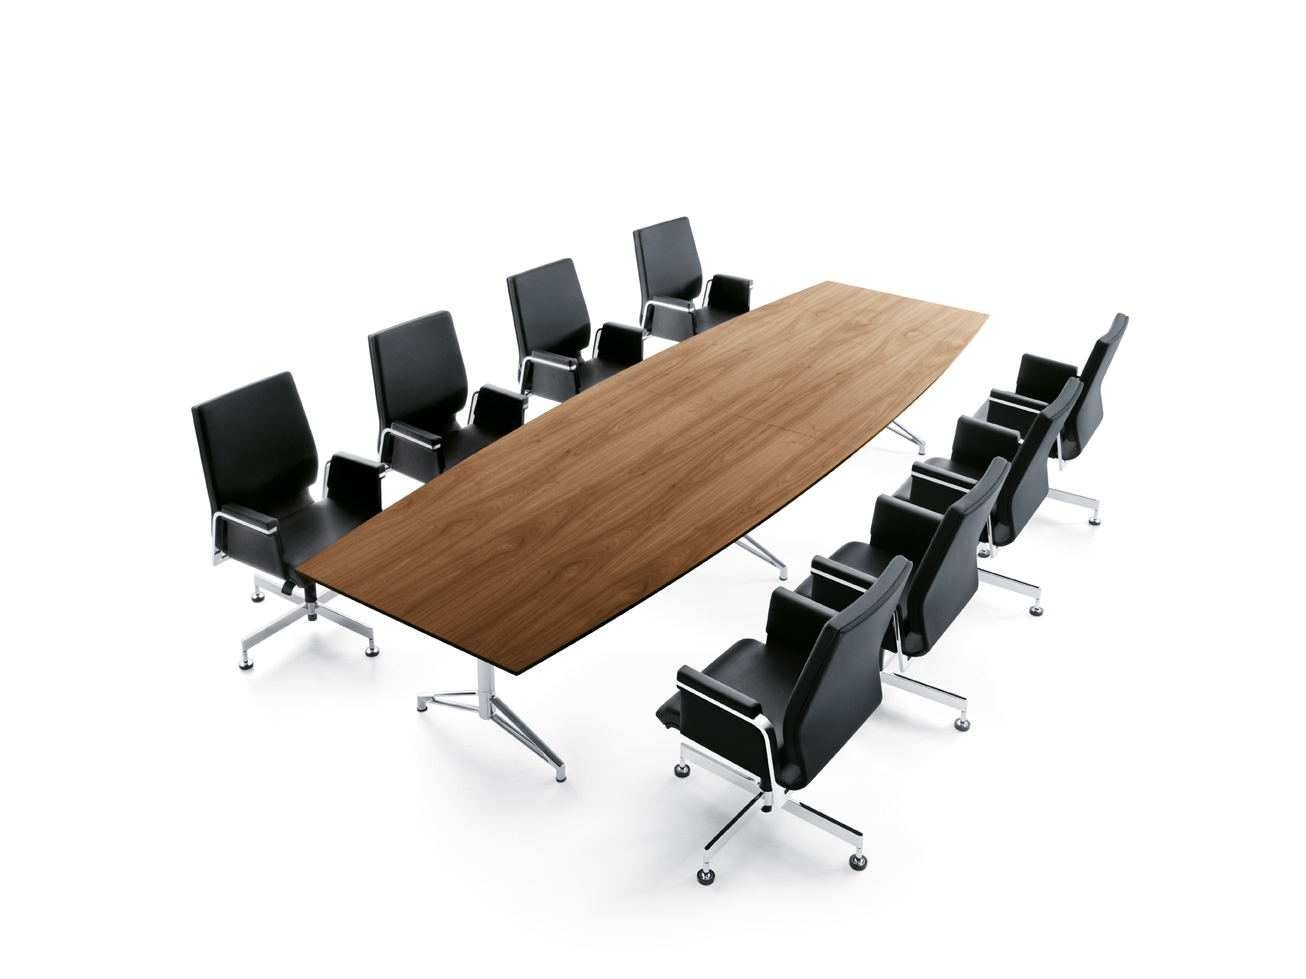 Wver You Choose For Your Boardroom It Needs To Not Only Be Comfortable But Ealing And Pleasing The Eye Chairs Table Also Need Match